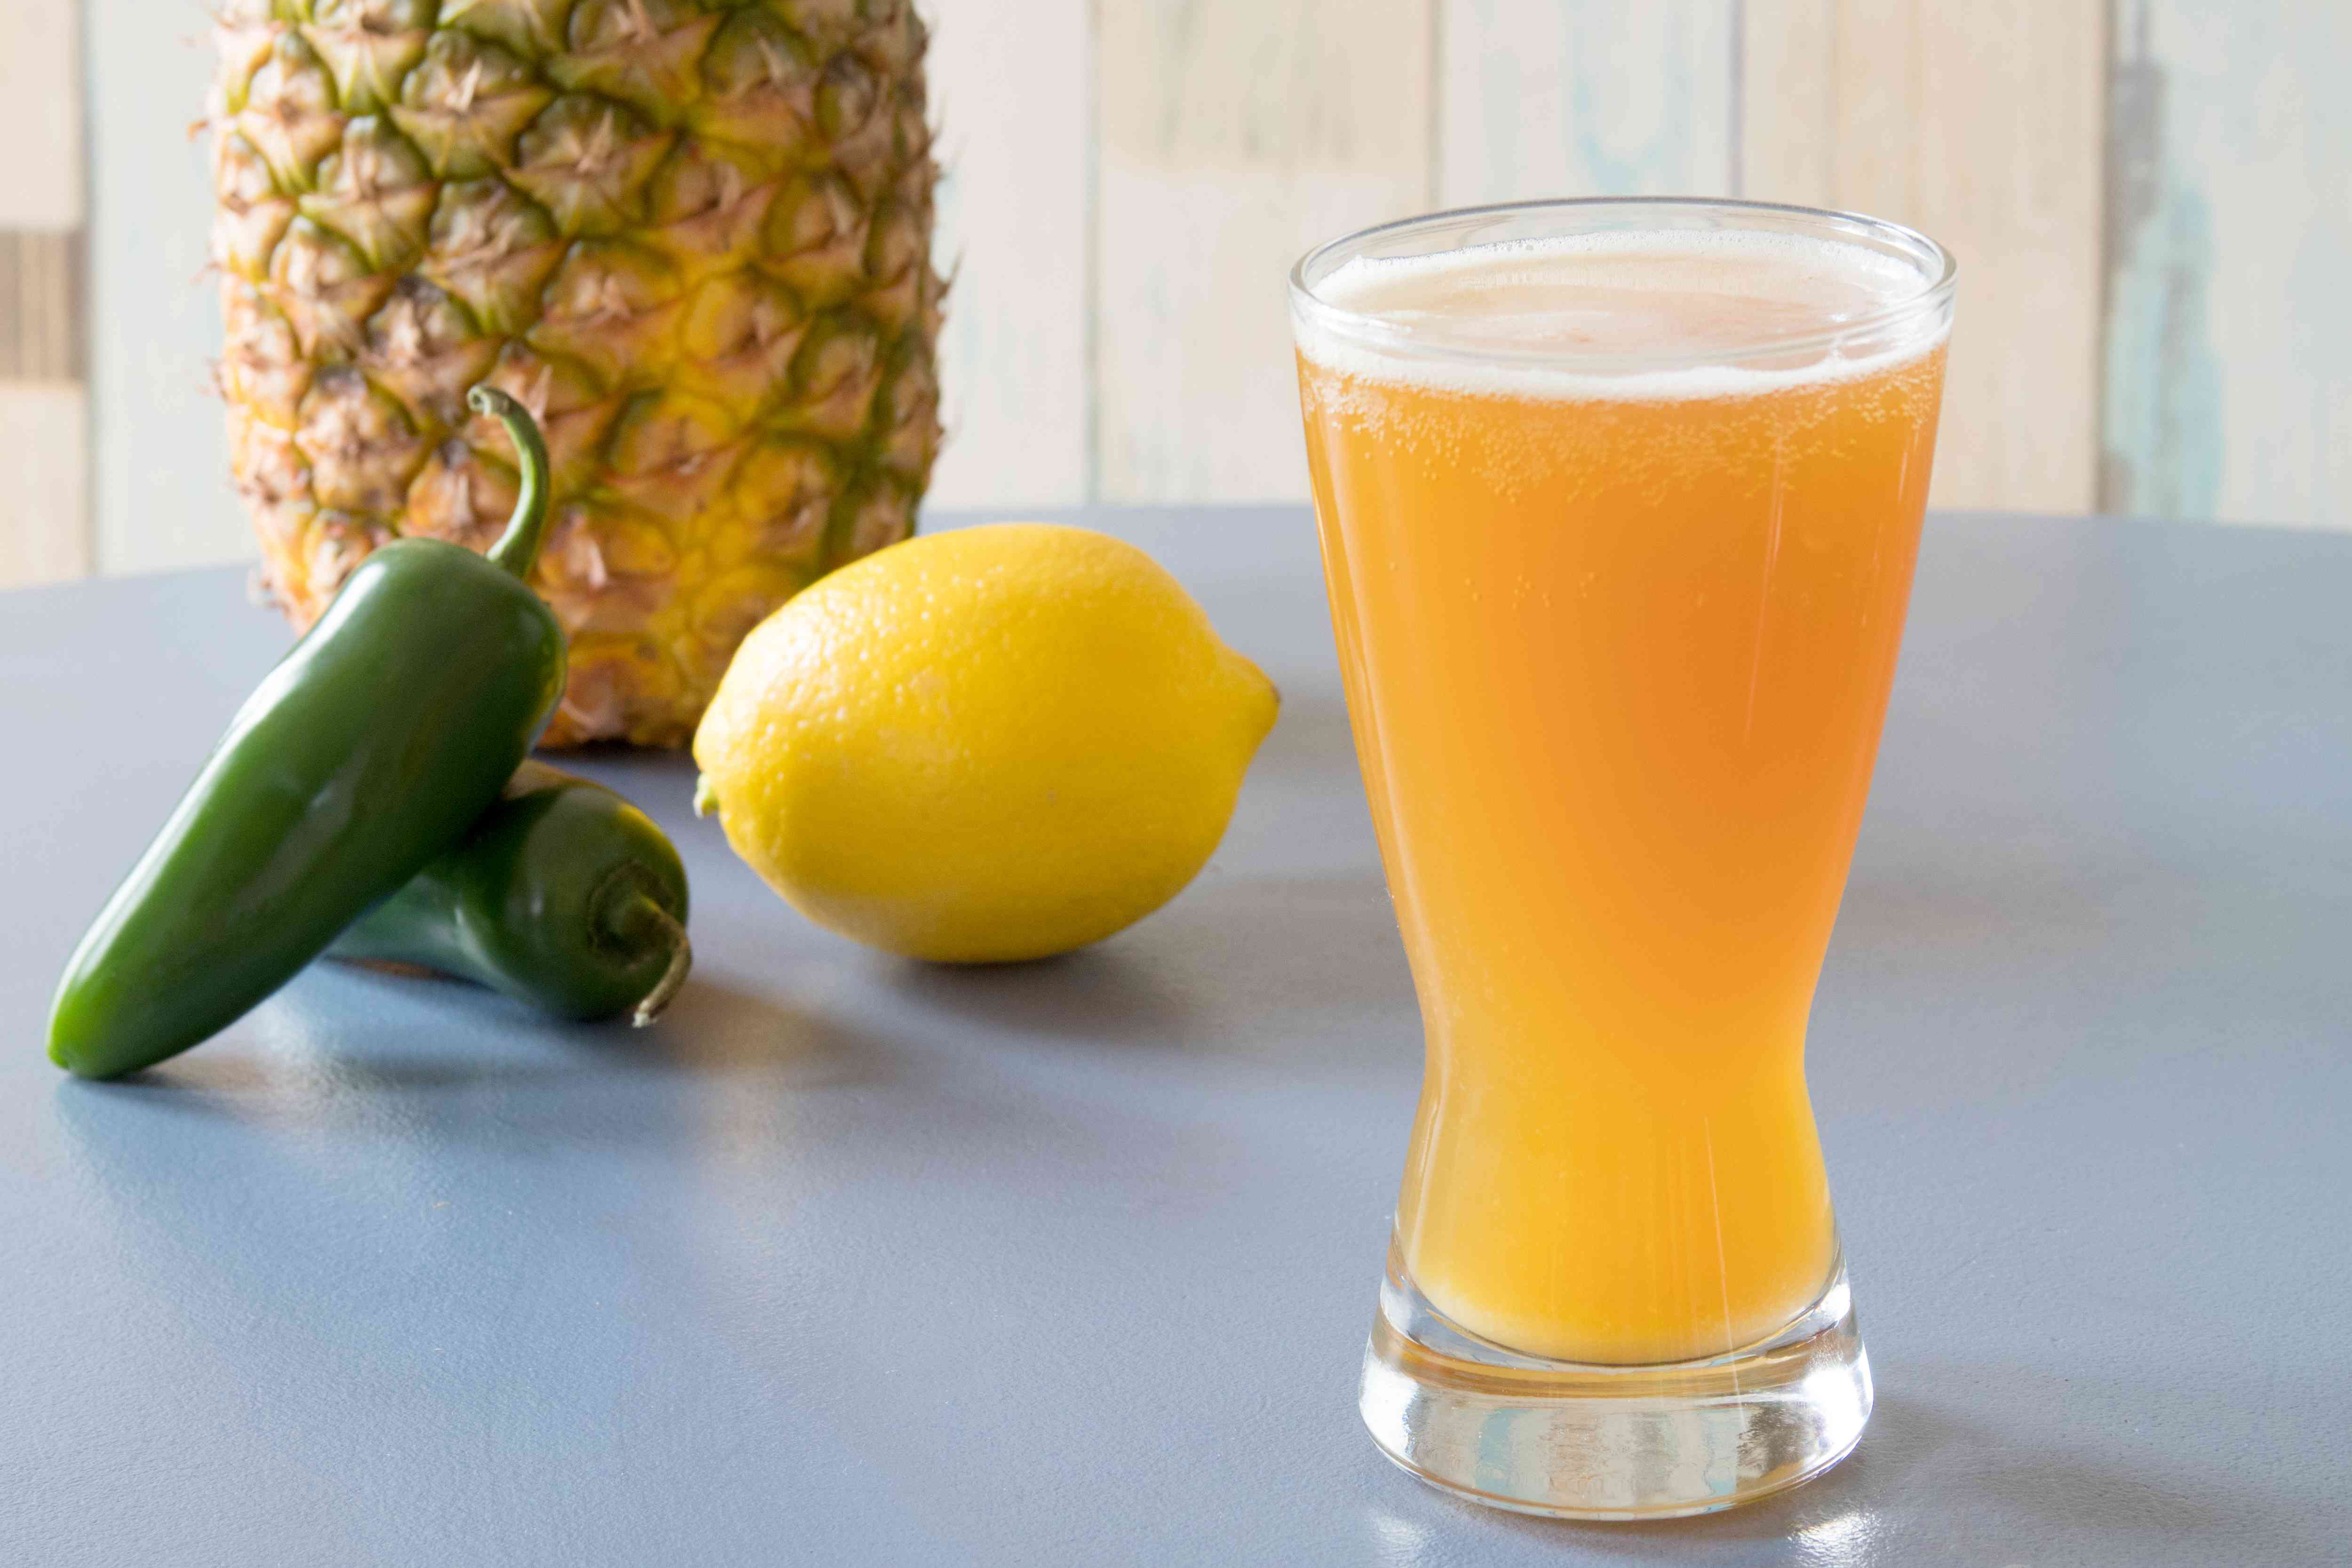 Spicy Pineapple Shandy